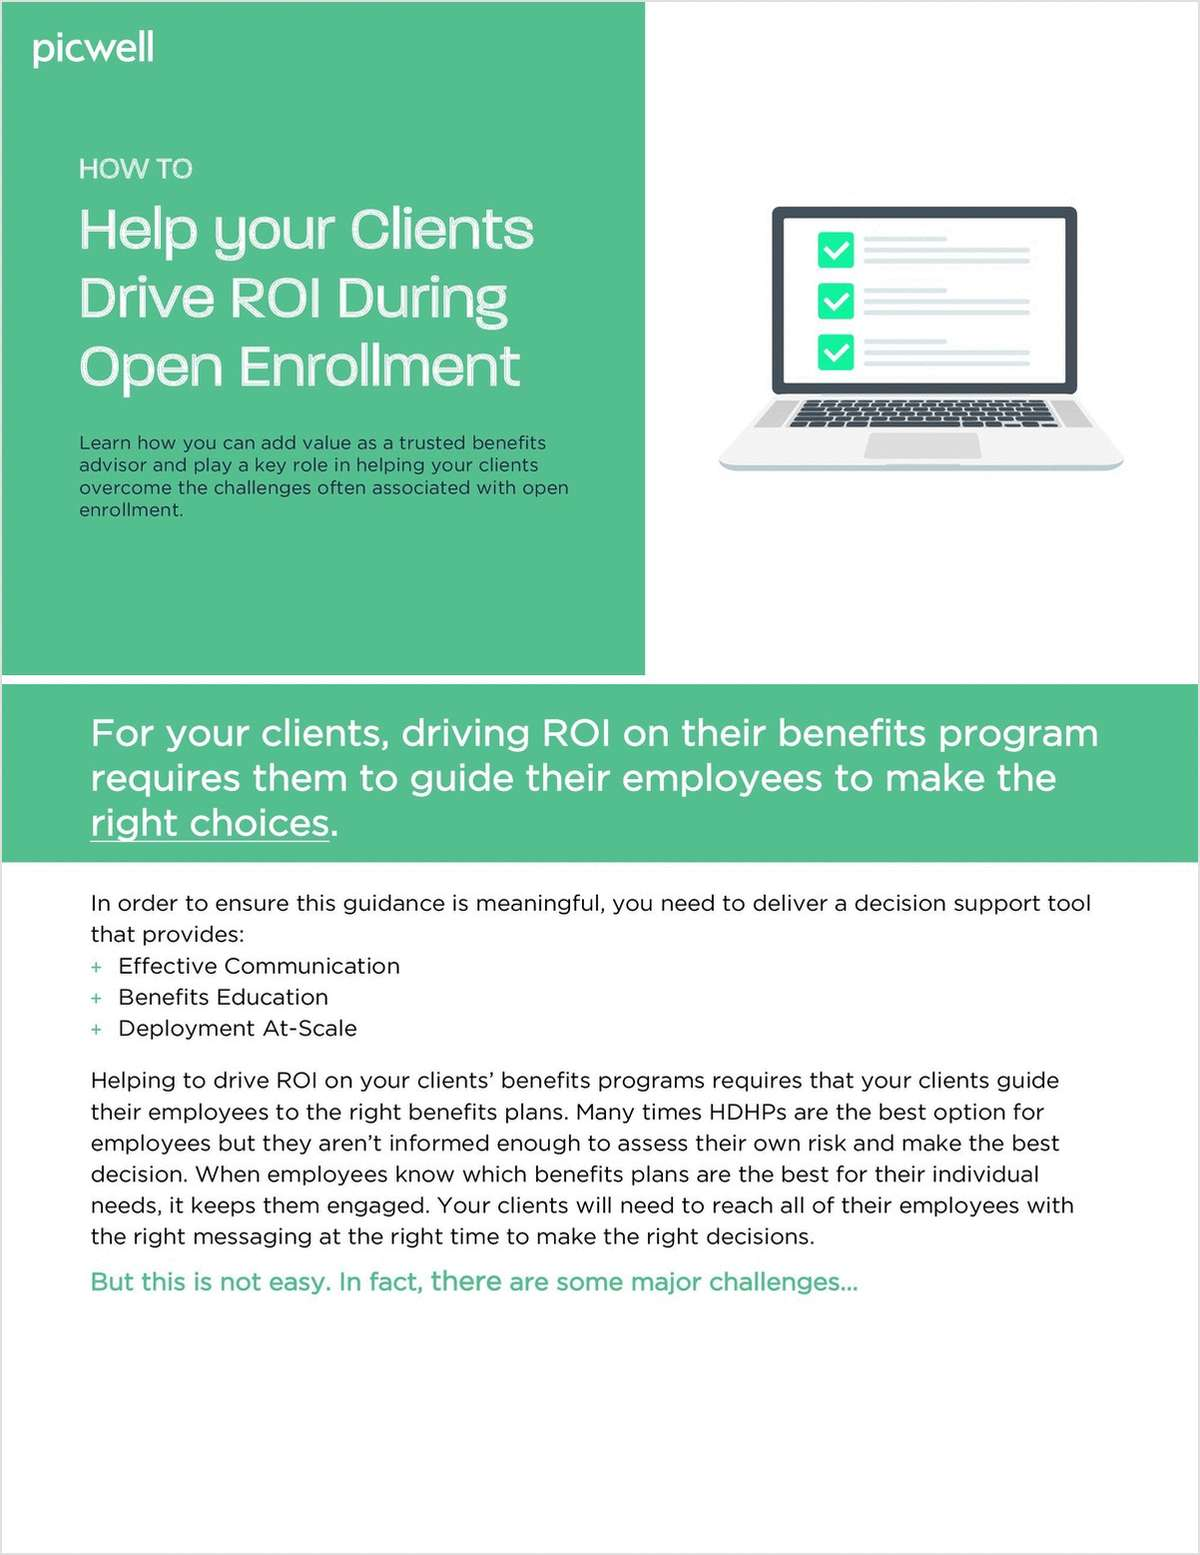 How to Help Your Clients Drive ROI During Open Enrollment